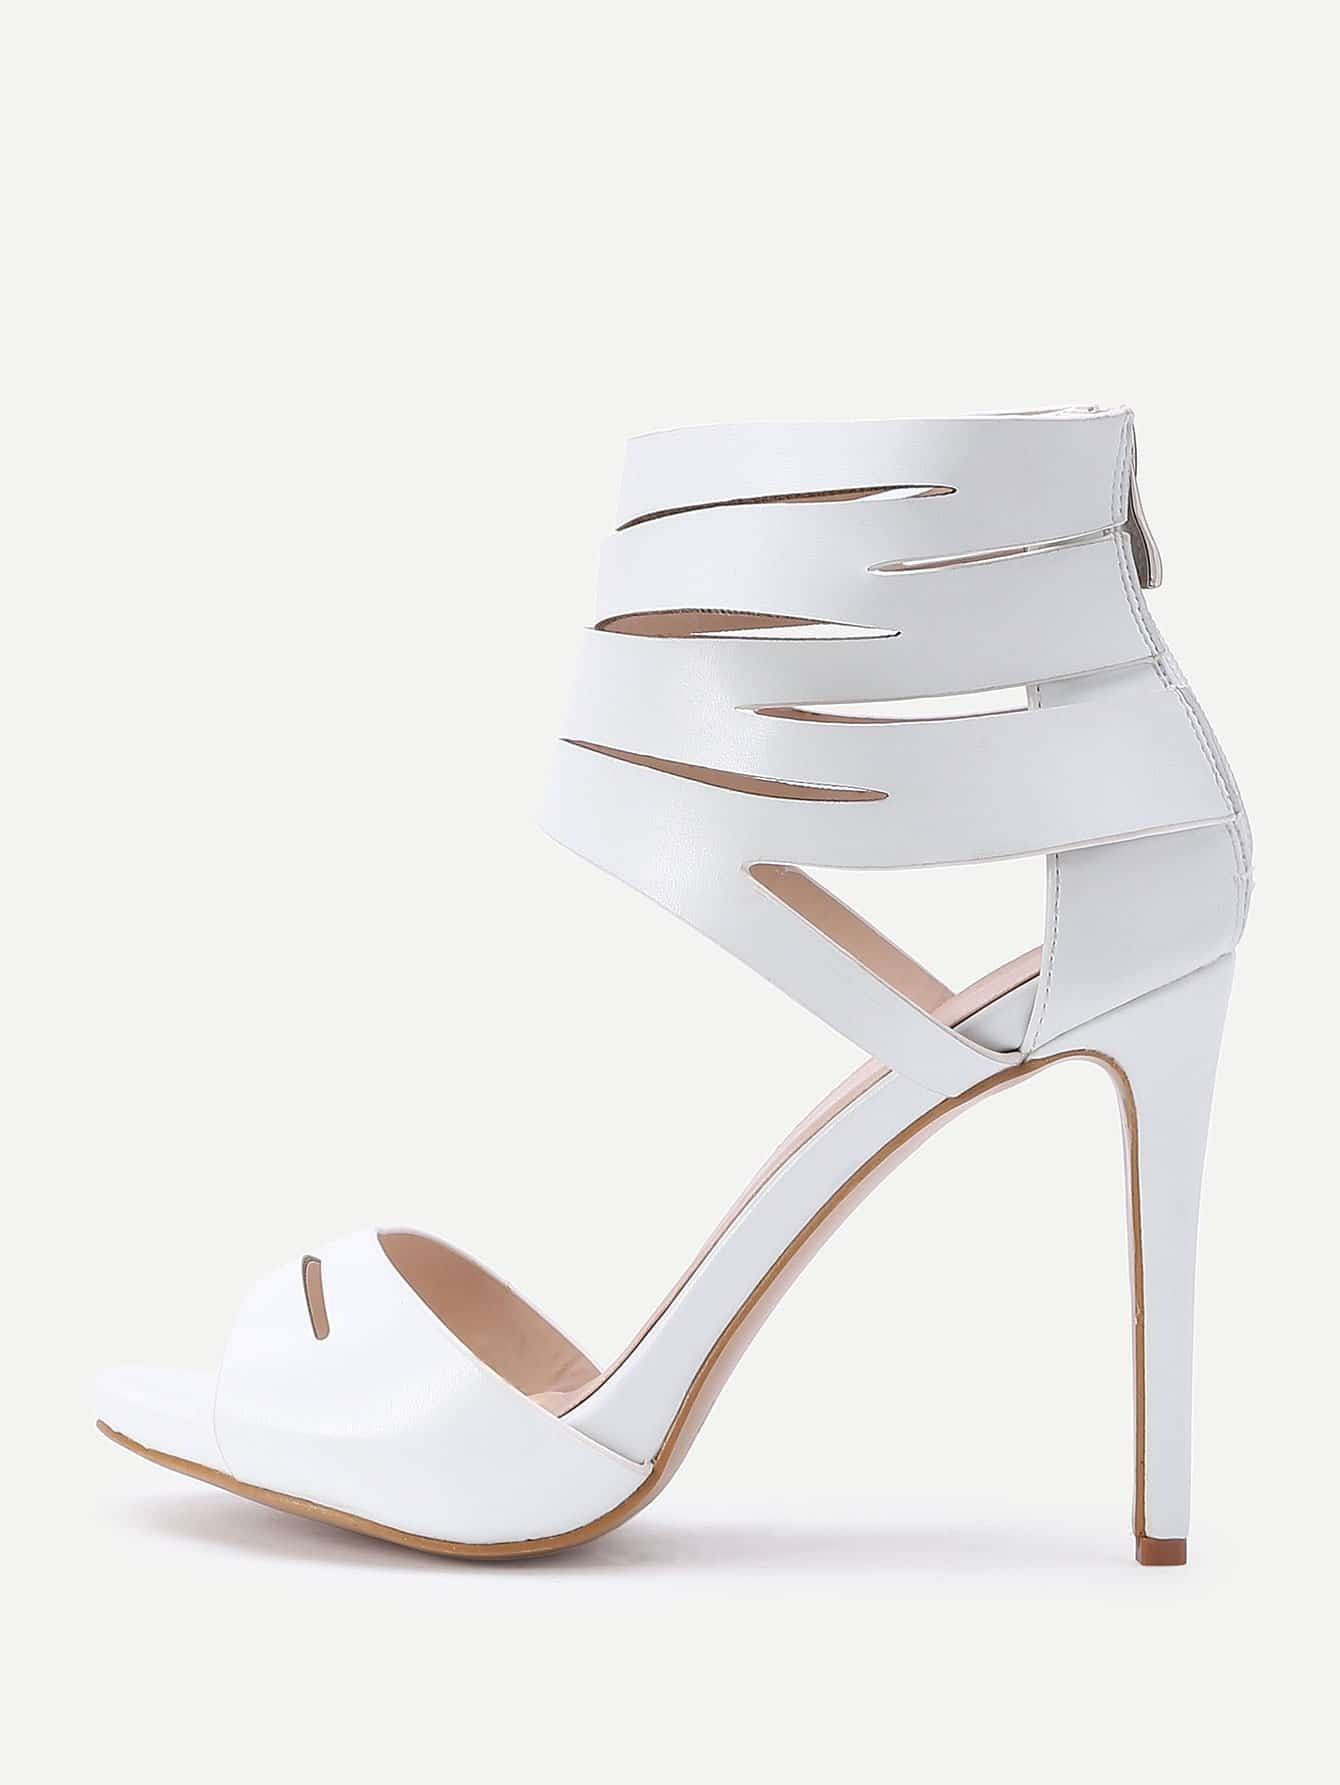 Cut Out PU High Heeled Sandals With Zipper Back shoes16041008